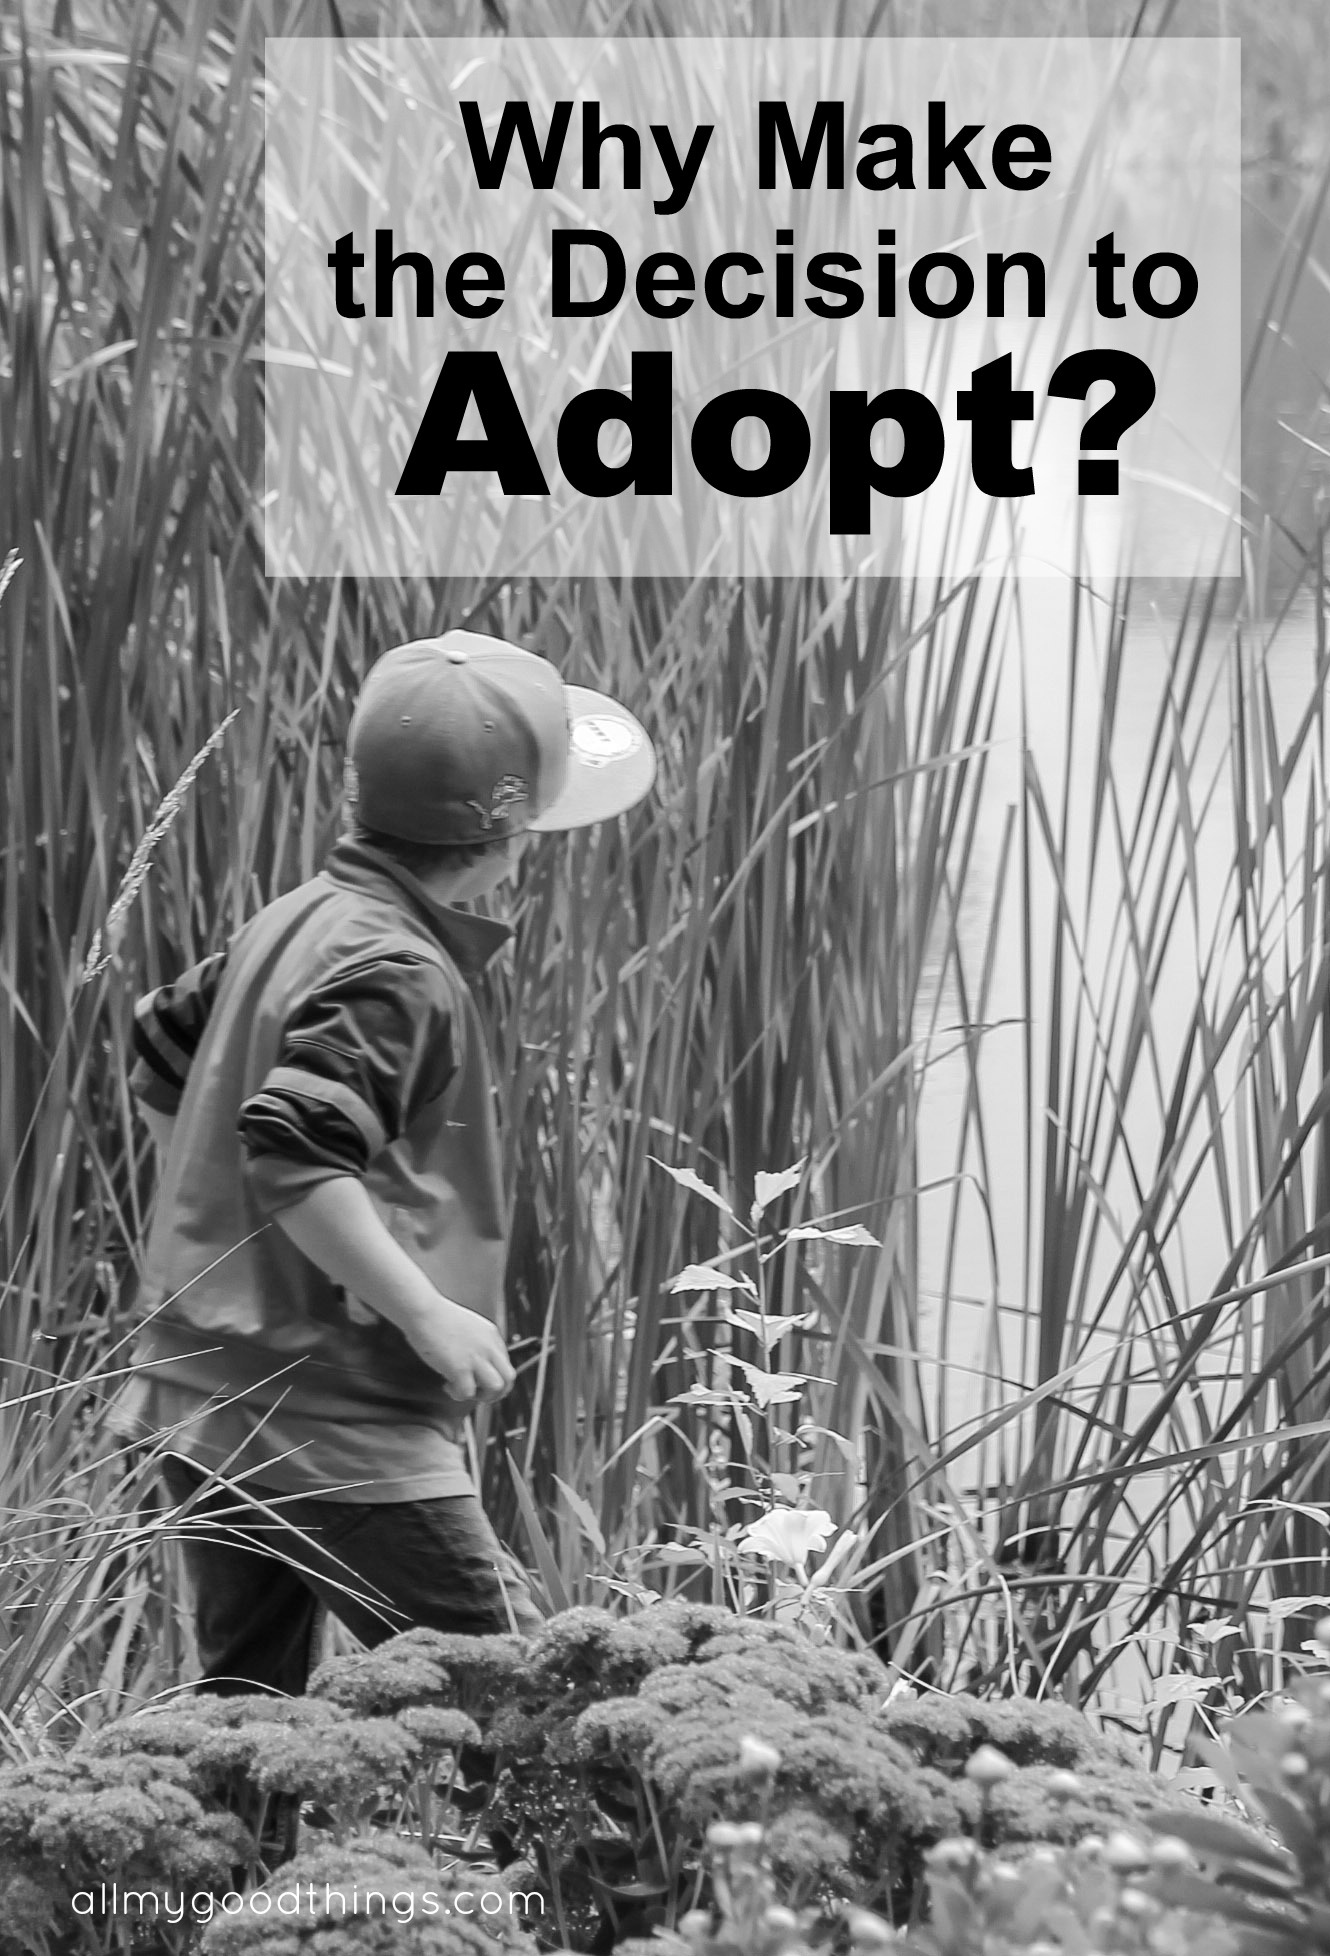 Why Make the Decision to Adopt?